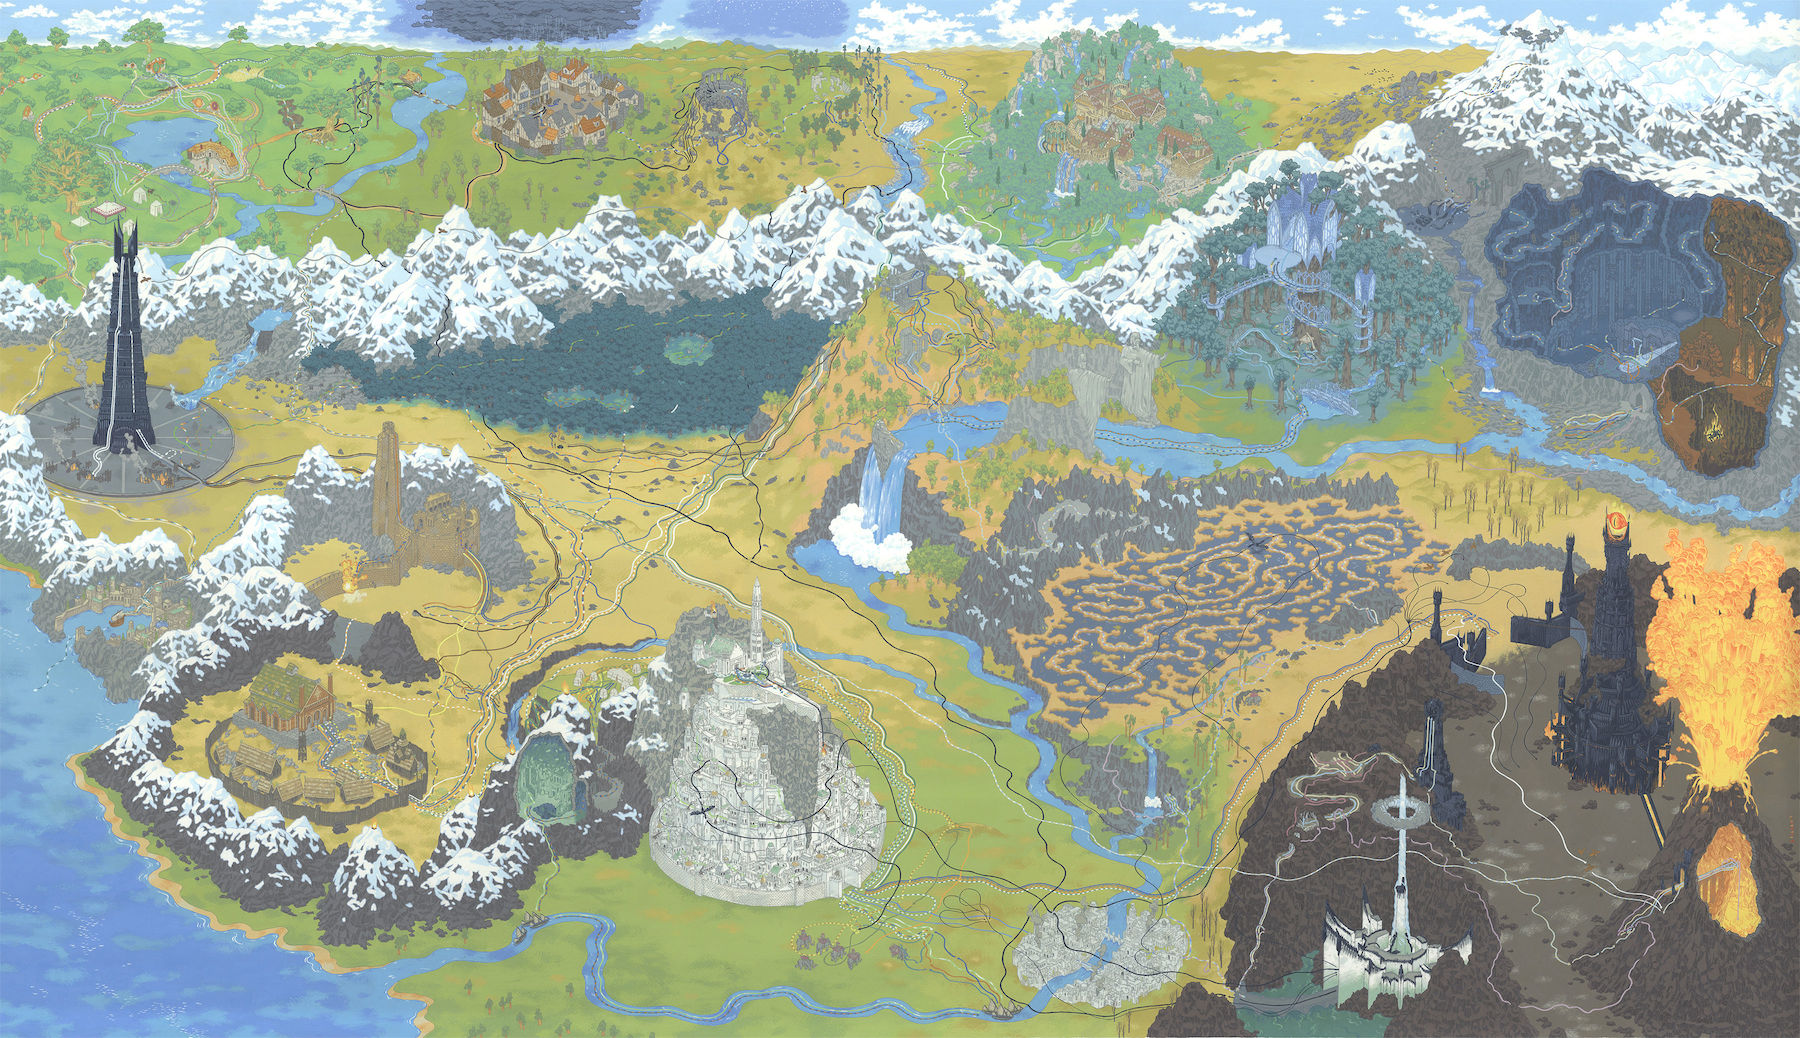 andrew-degraff-lord-of-the-rings-hr